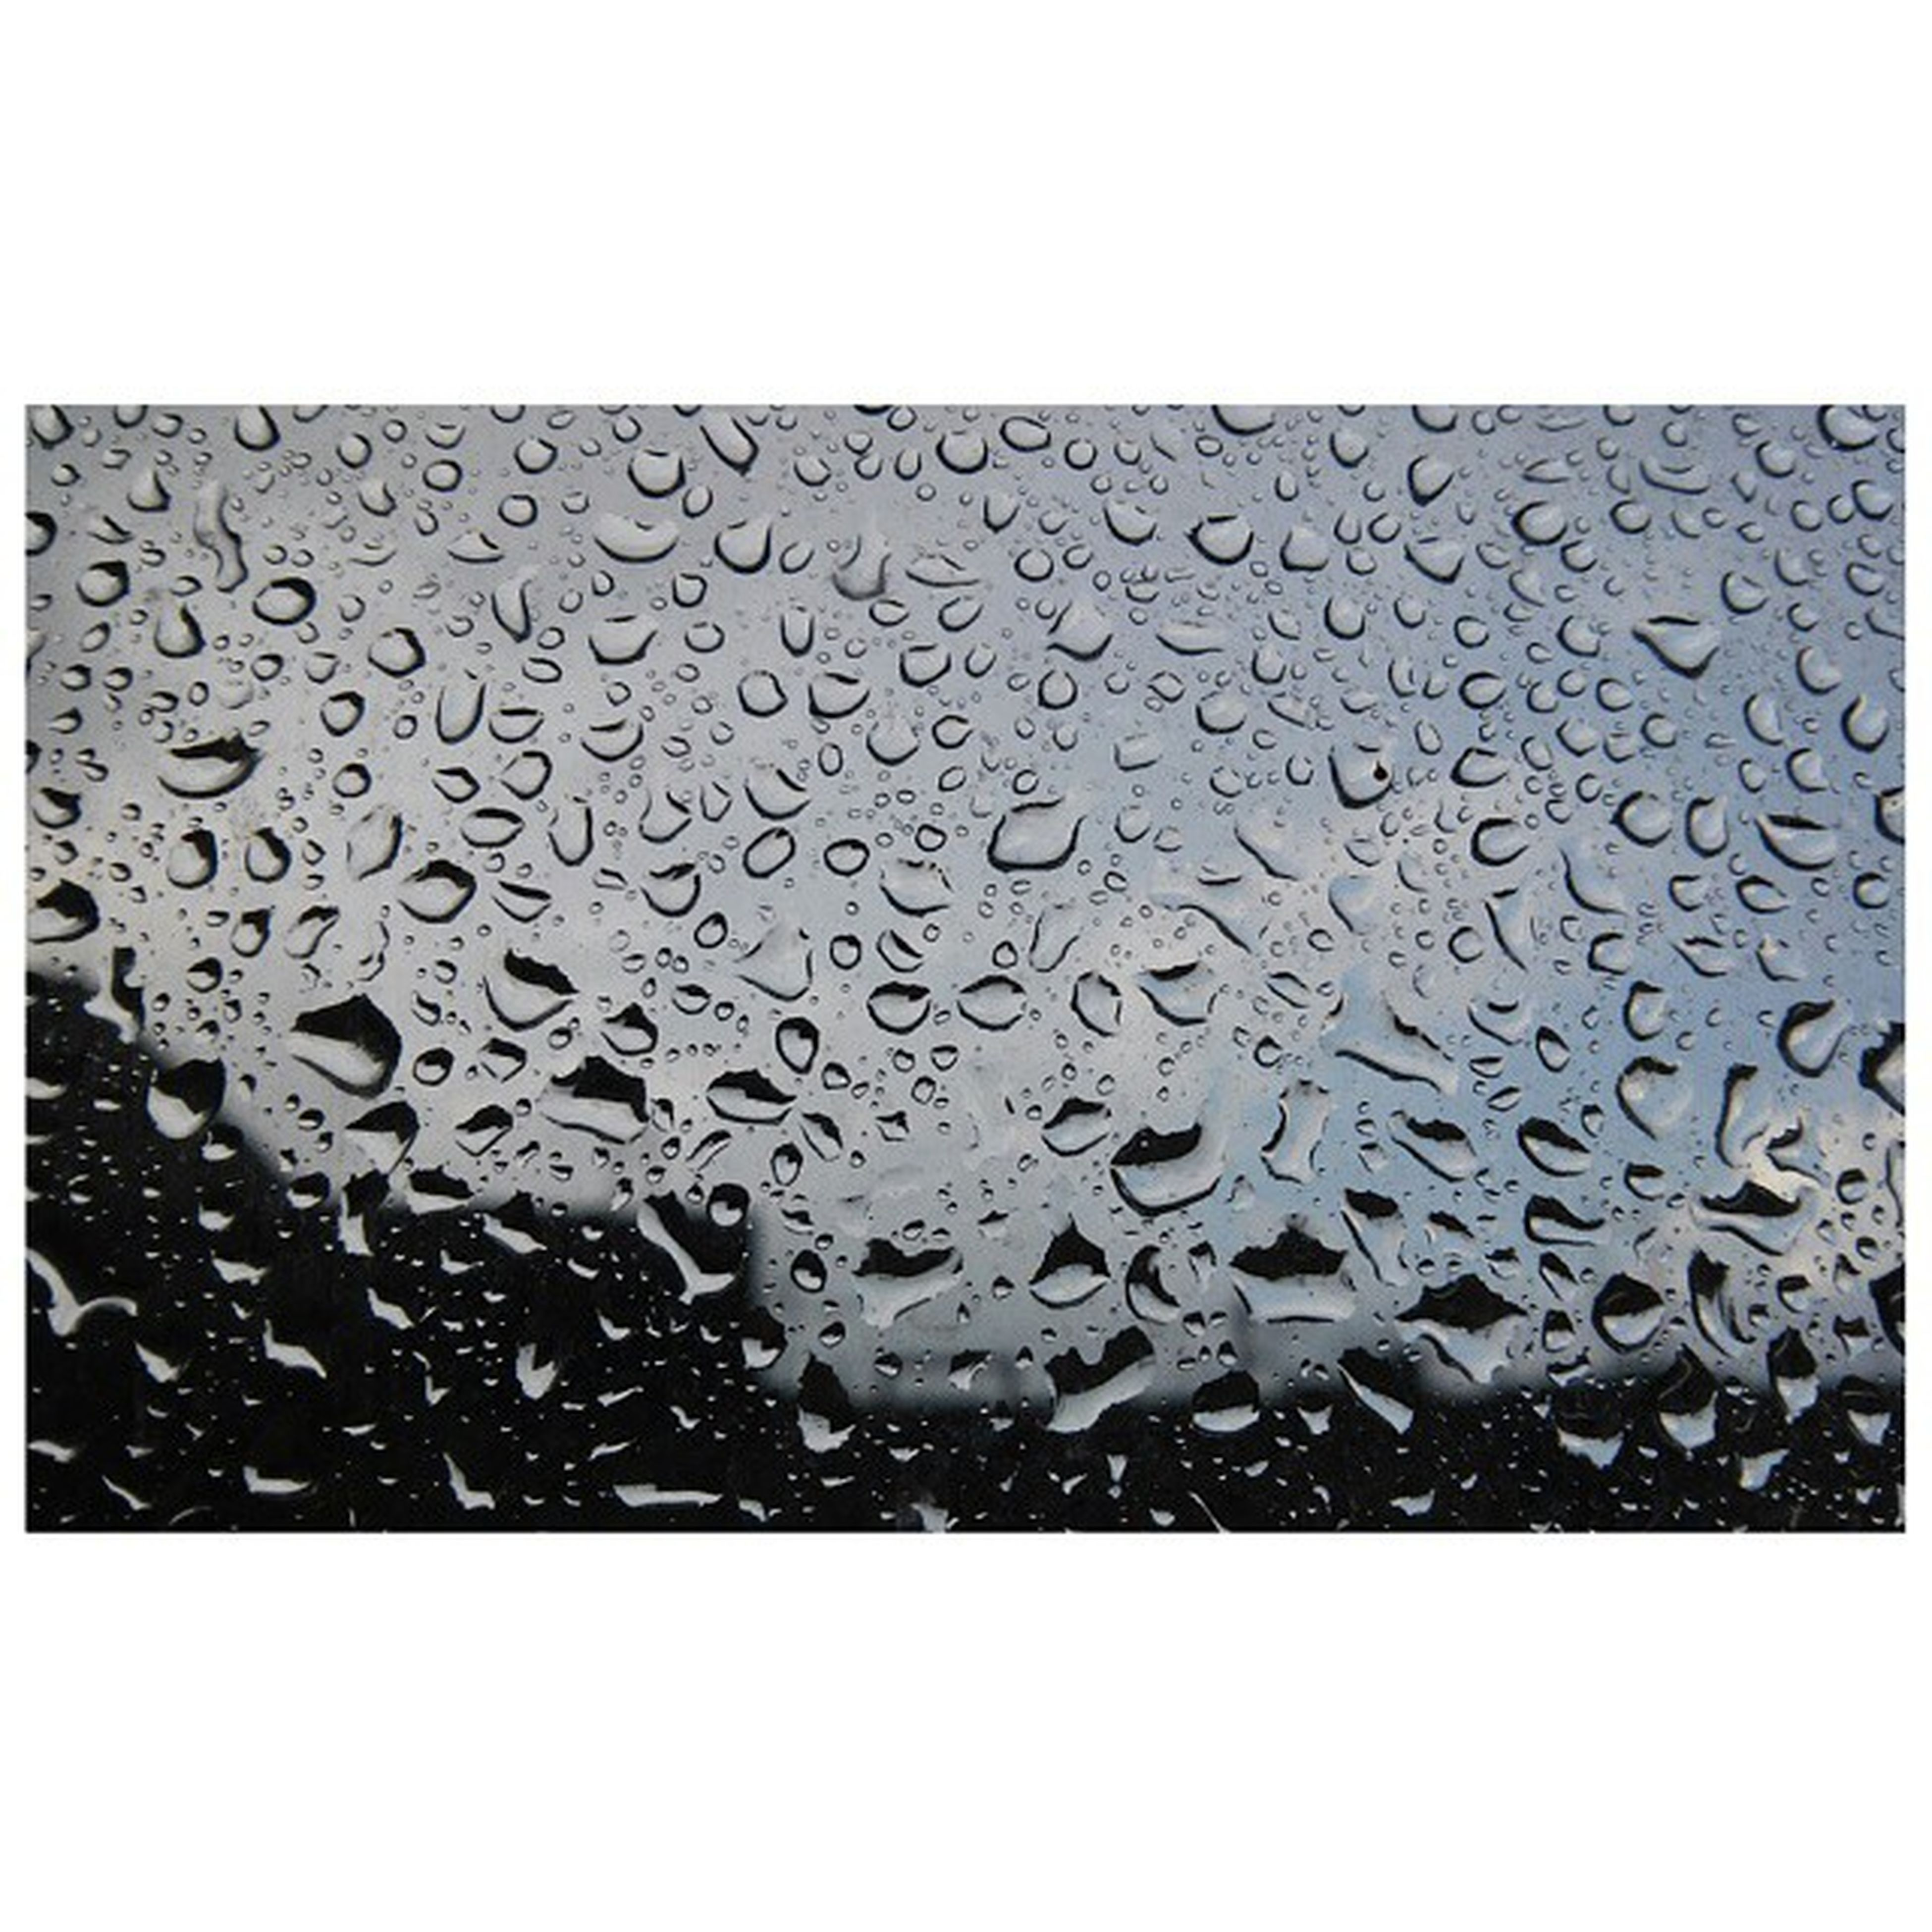 transfer print, auto post production filter, full frame, backgrounds, drop, indoors, wet, pattern, water, window, close-up, transparent, glass - material, no people, frame, rain, textured, nature, glass, day